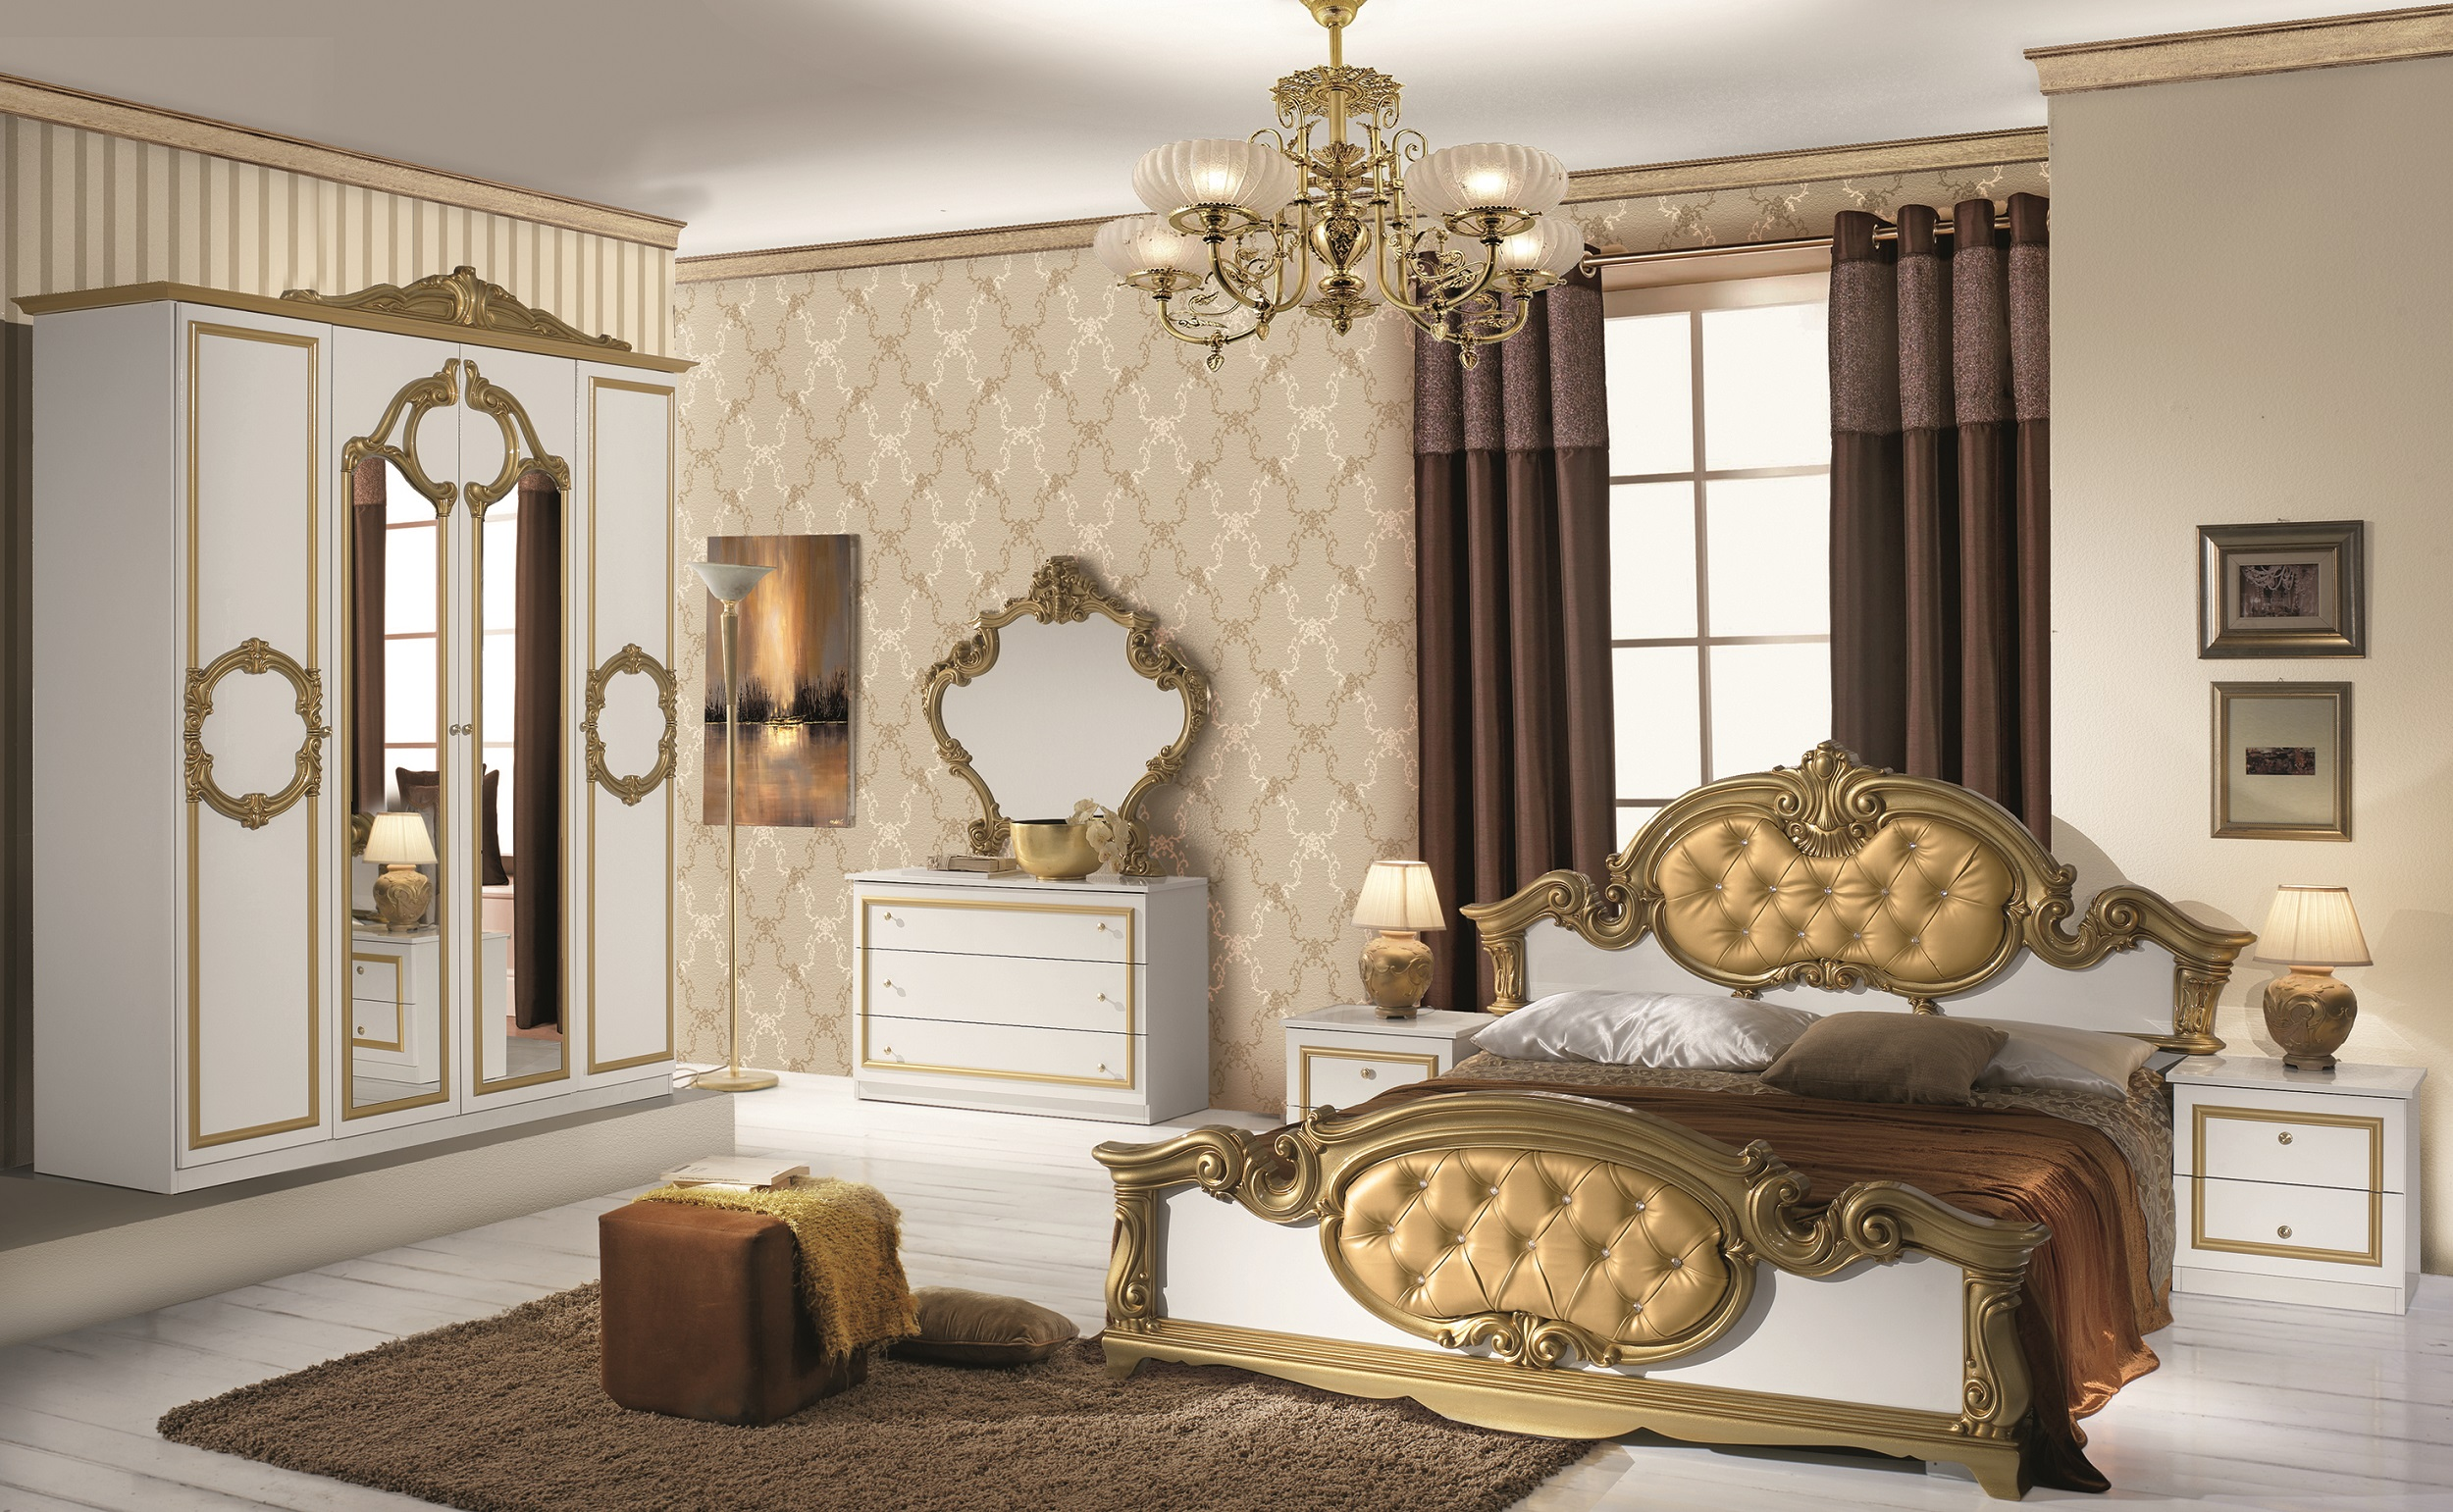 schlafzimmer barocco in weiss gold klassik 4trg s bar b160 4d w. Black Bedroom Furniture Sets. Home Design Ideas